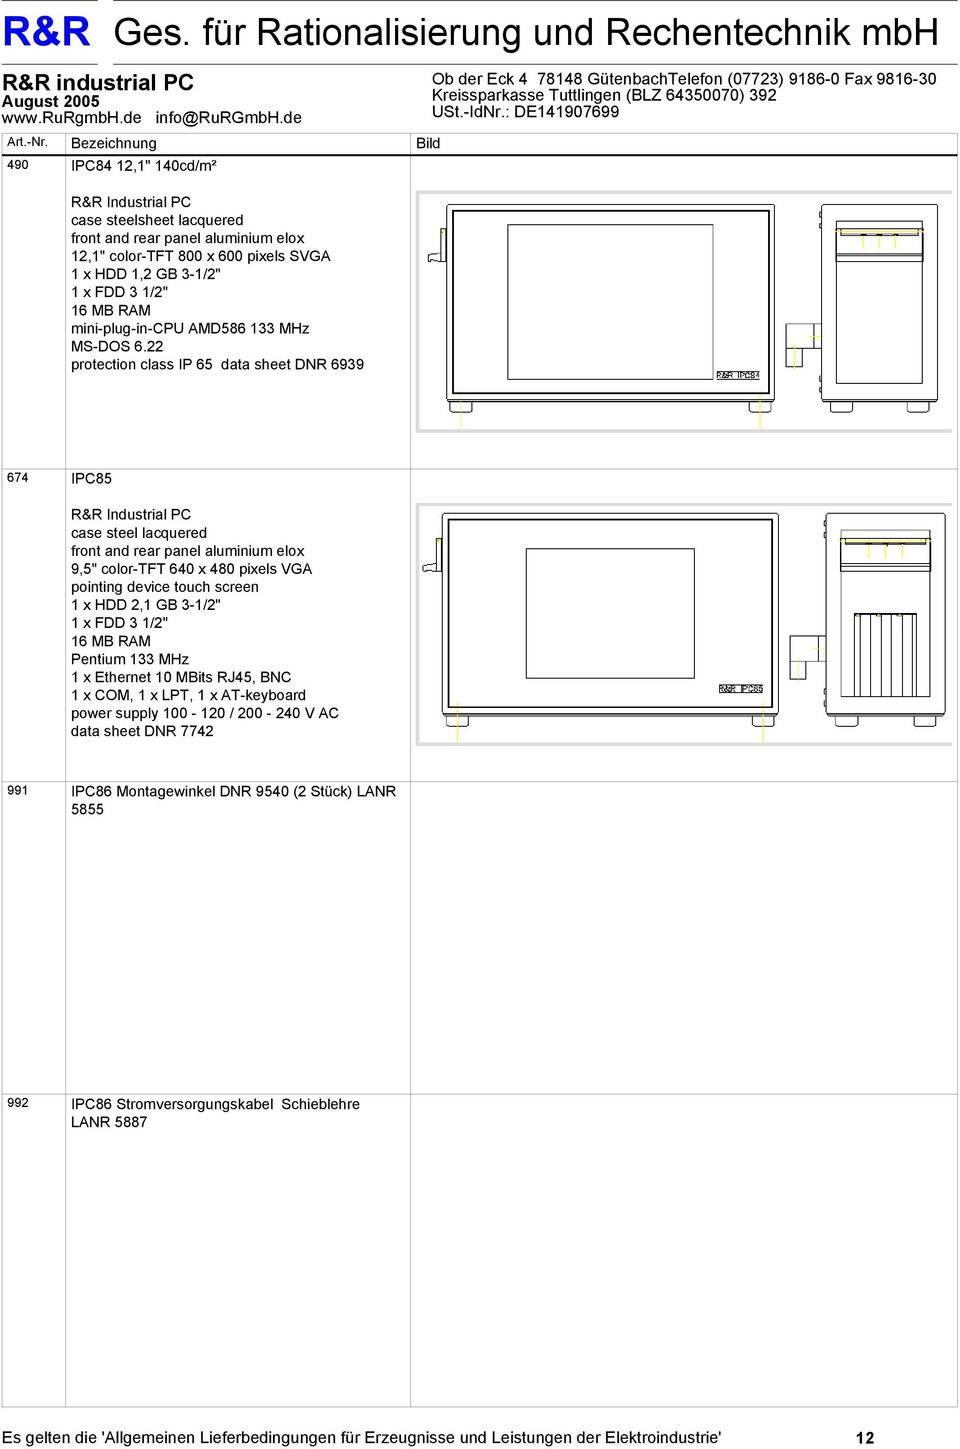 "22 protection class IP 65 data sheet DNR 6939 674 IPC85 front and rear panel aluminium elox 9,5"" color-tft 640 x 480 pixels VGA pointing device touch screen 1"